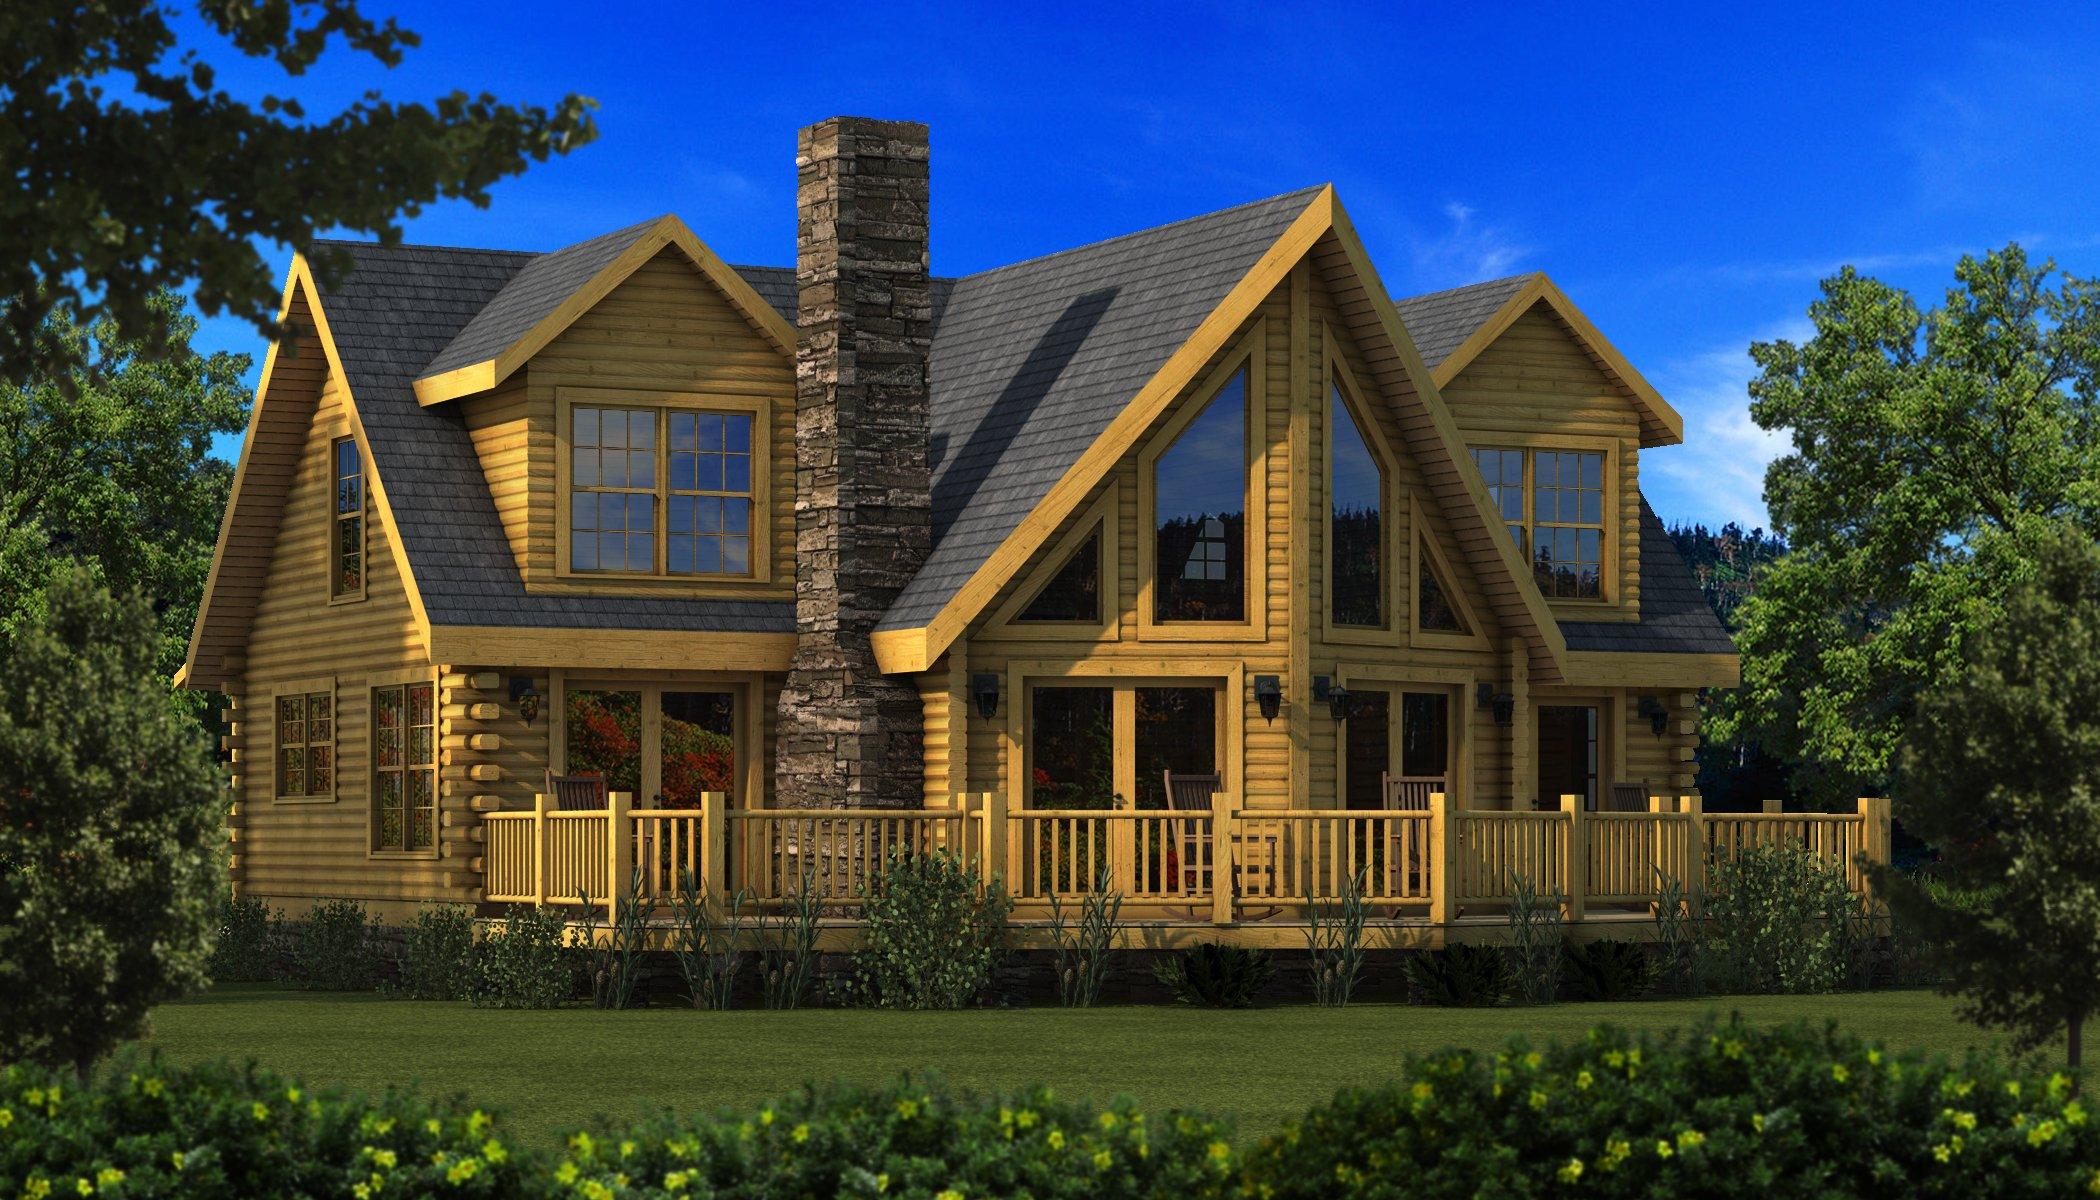 Danville plans information southland log homes Southland log homes